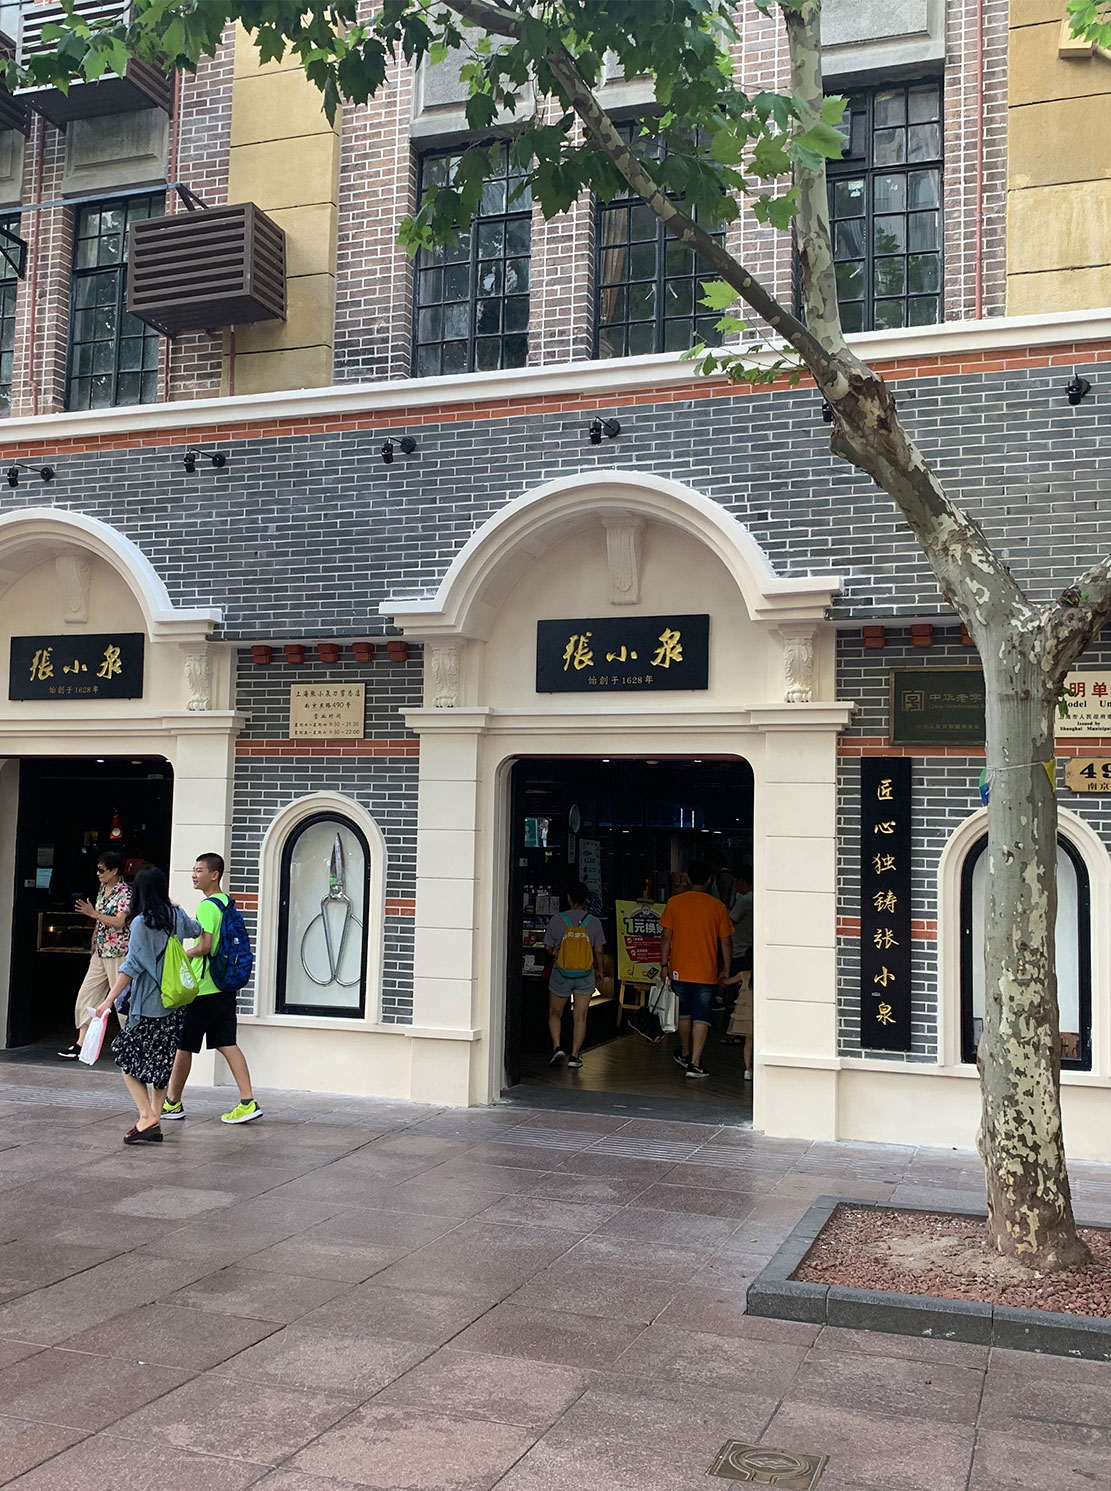 """In 2014, the disputes and problems left over from the brand history were ended by """"Zhang Xiaoquan"""", and Hangzhou Zhang Xiaoquan and Shanghai Zhang Xiaoquan became a veritable family."""